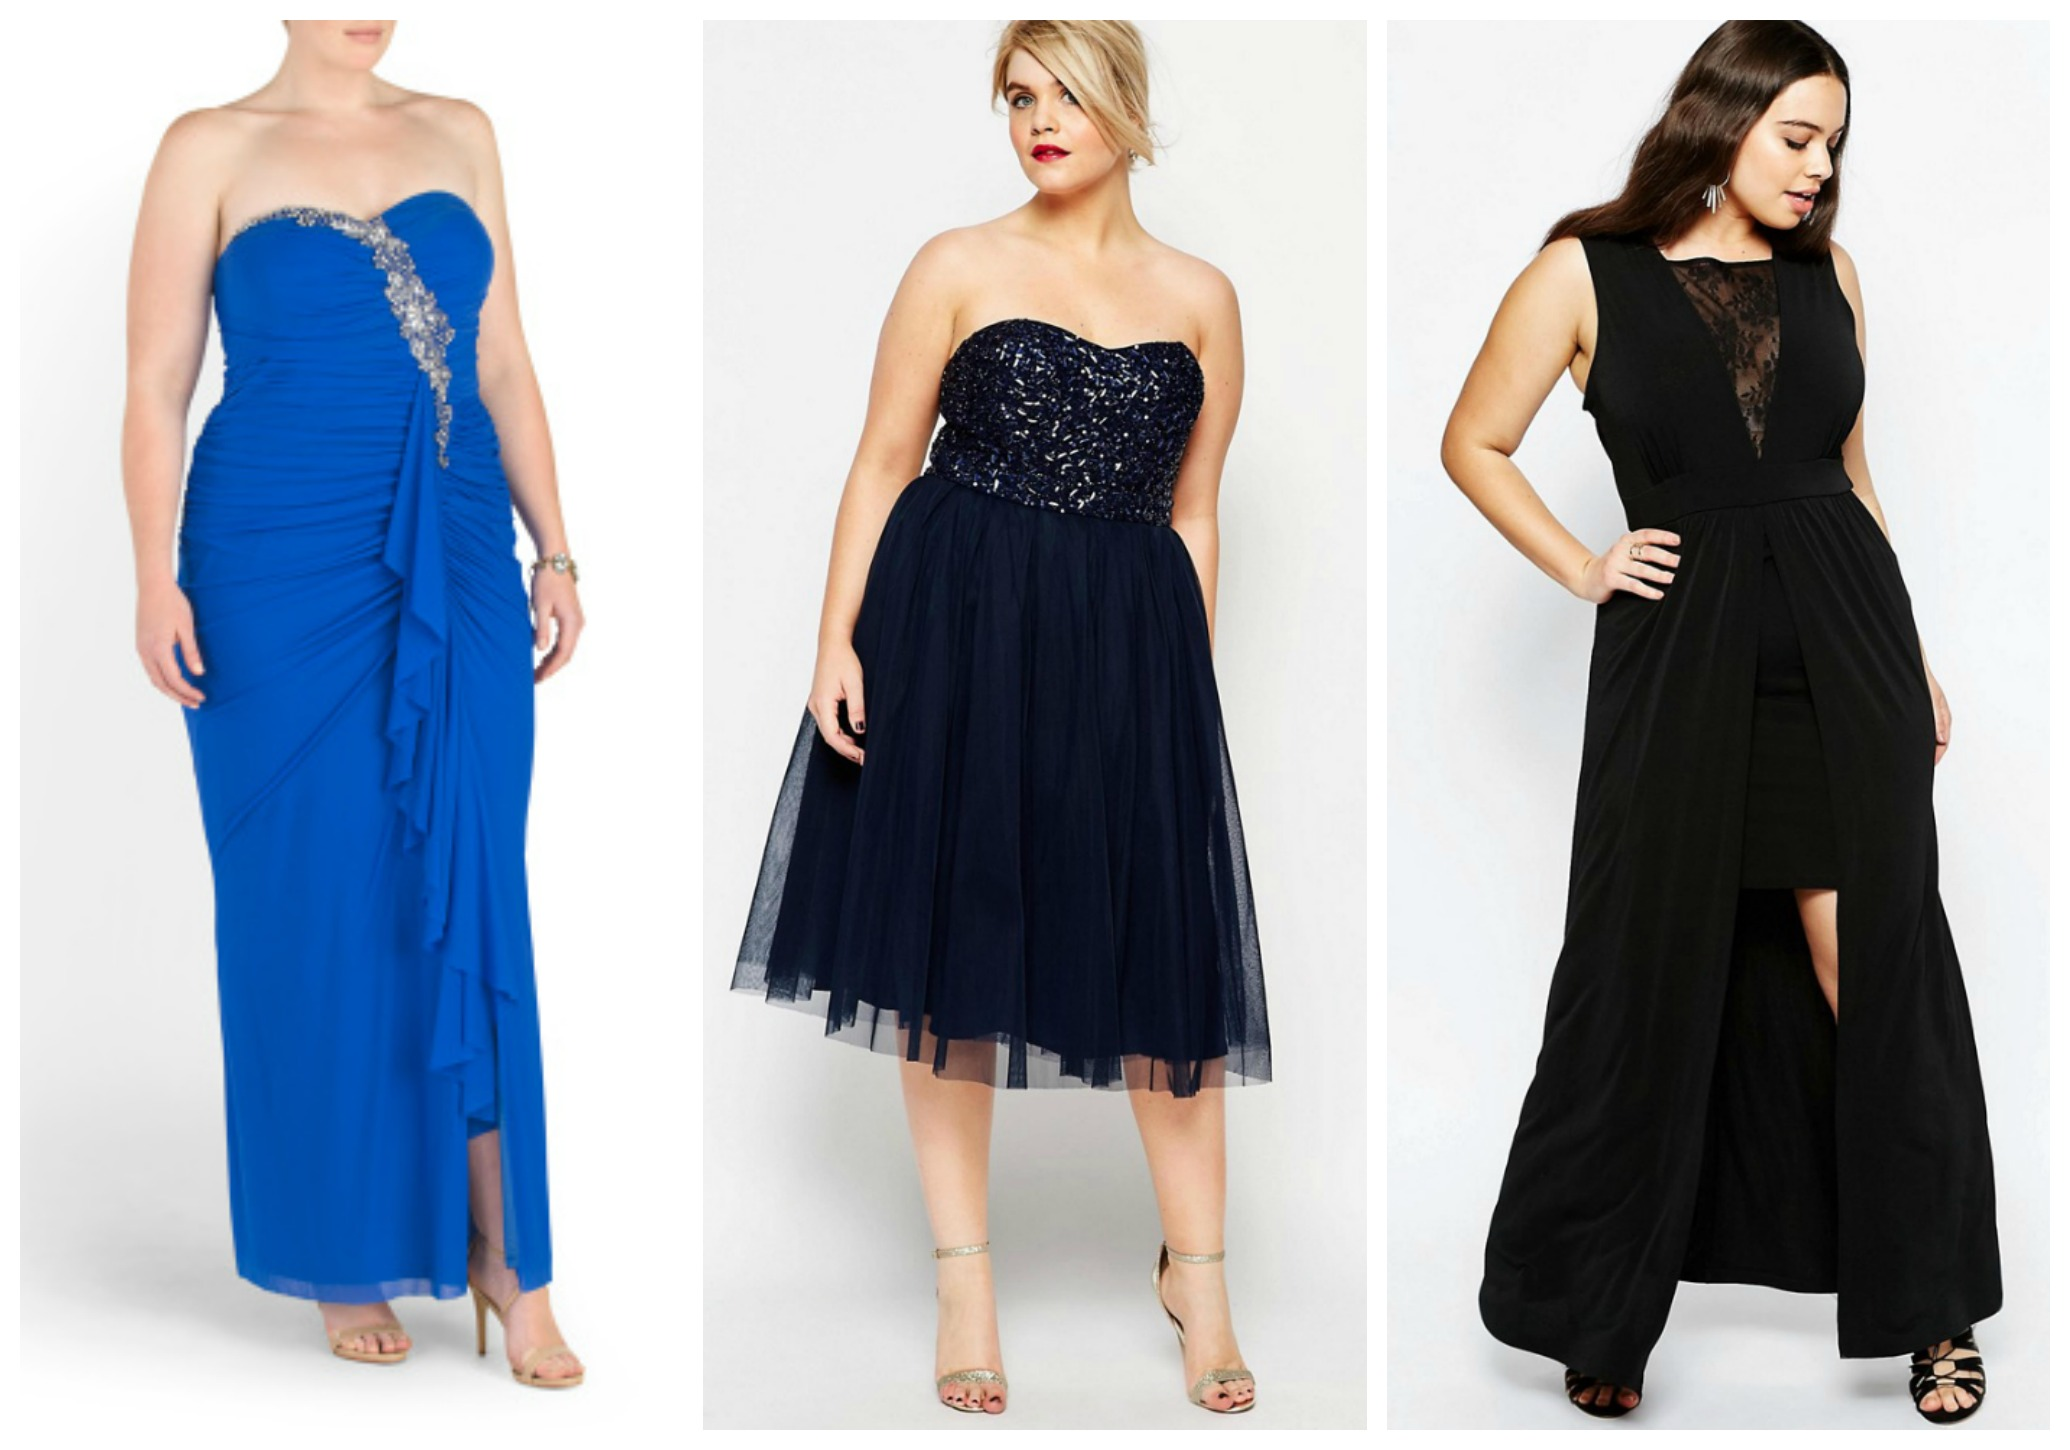 10 Red Carpet Worthy Plus Size Prom Dresses Under $100 | Stylish Curves